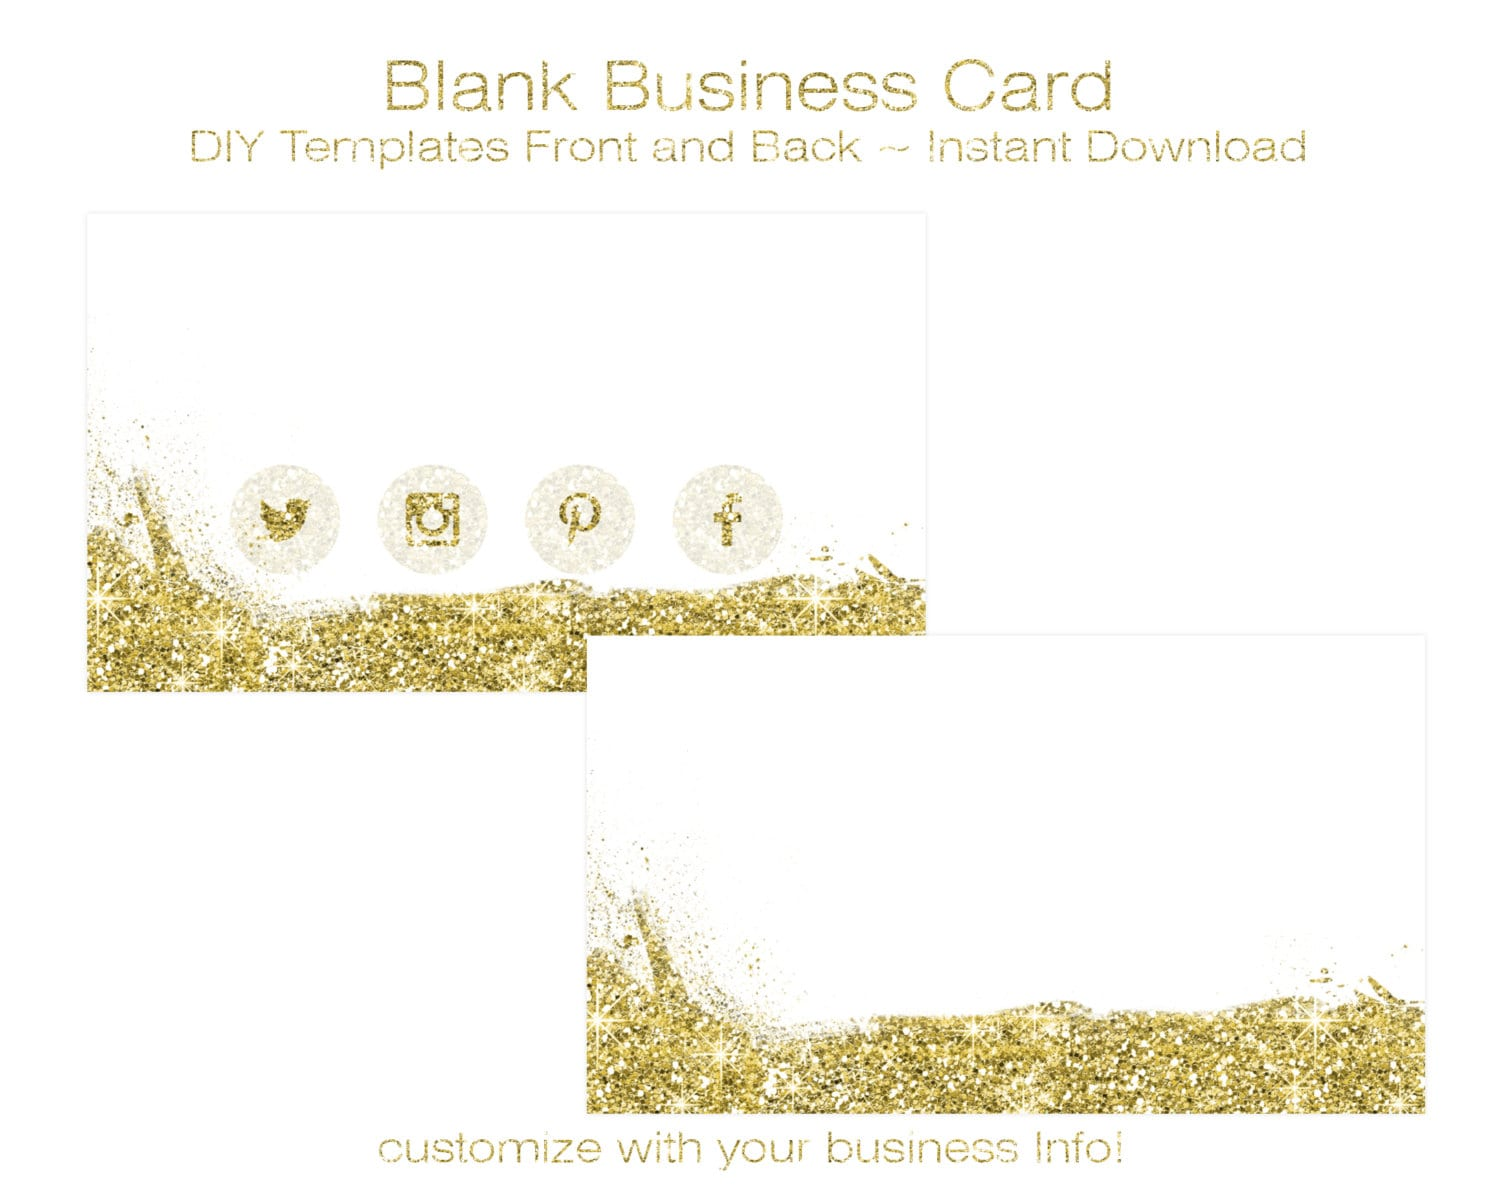 Business card template diy blank business card standard size zoom reheart Image collections